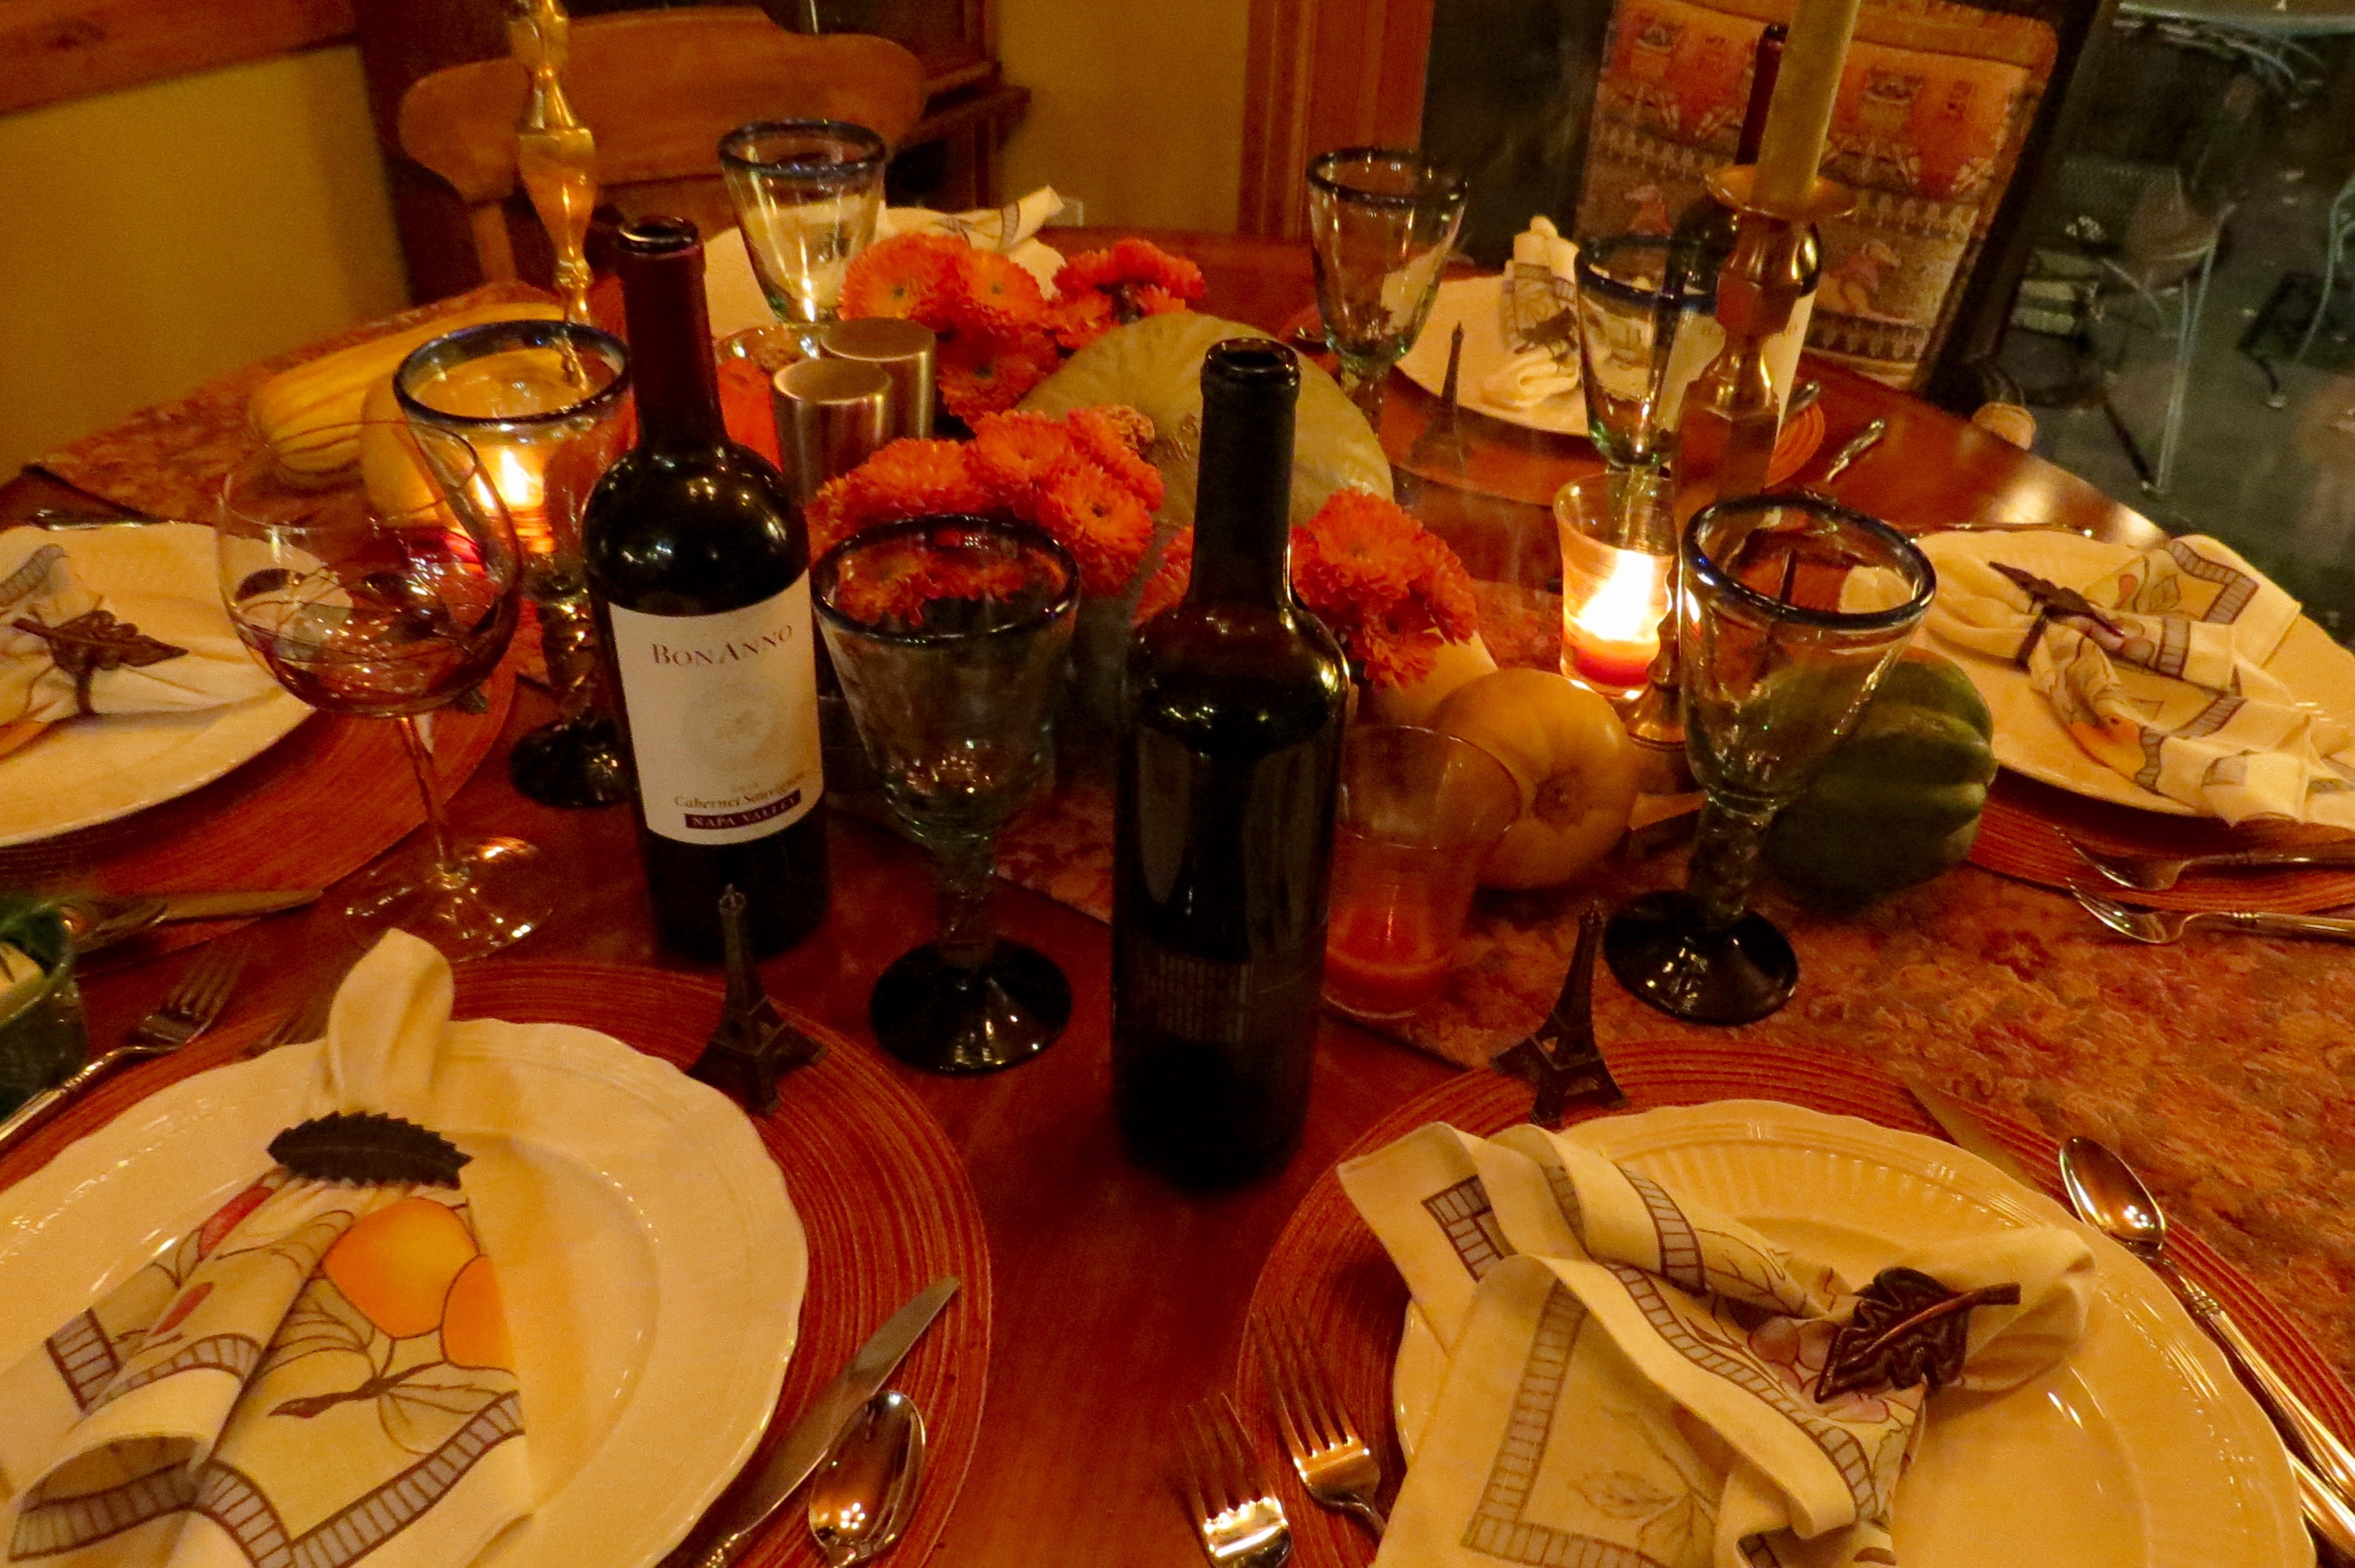 Donna Grauer set a beautiful table for the evening. Note the tiny towers at each place setting.